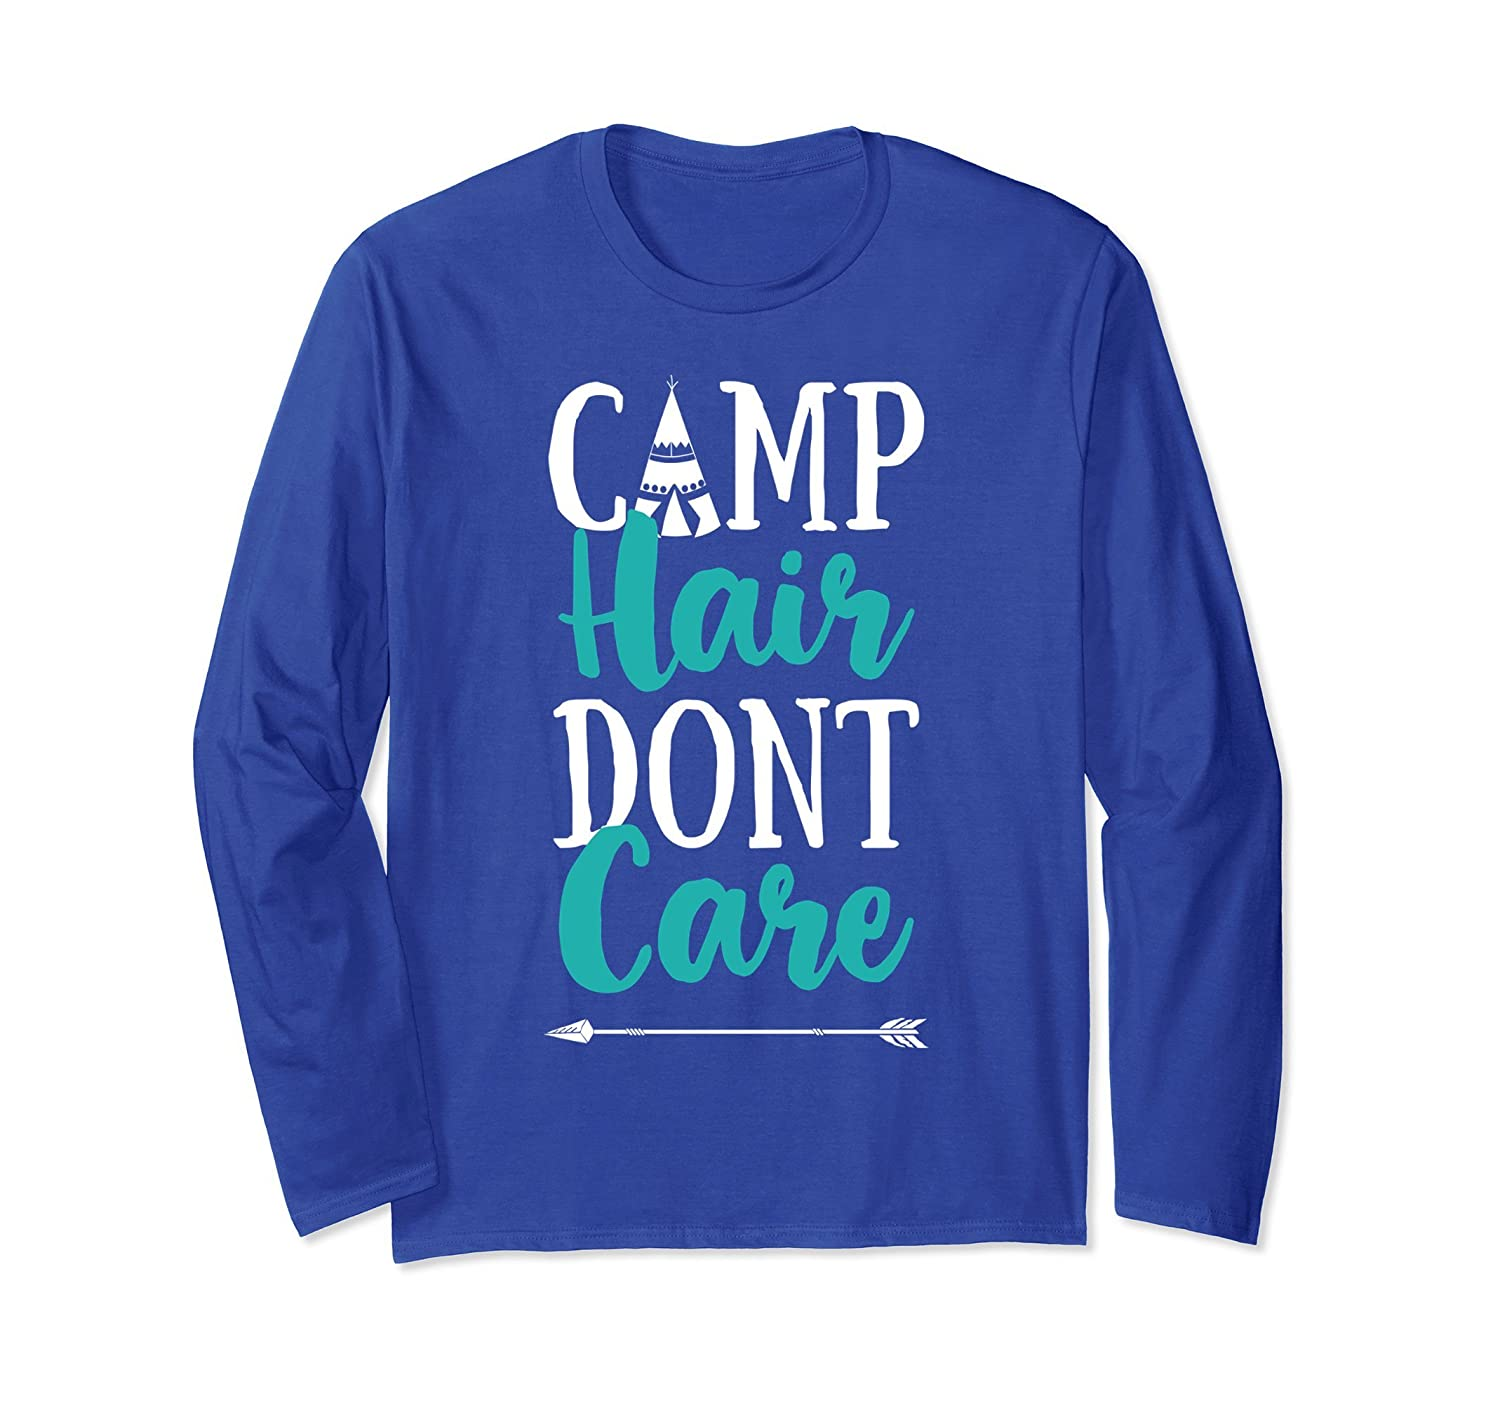 Camp Hair Don't Care T shirt Camping Camper Men Women Gift-alottee gift